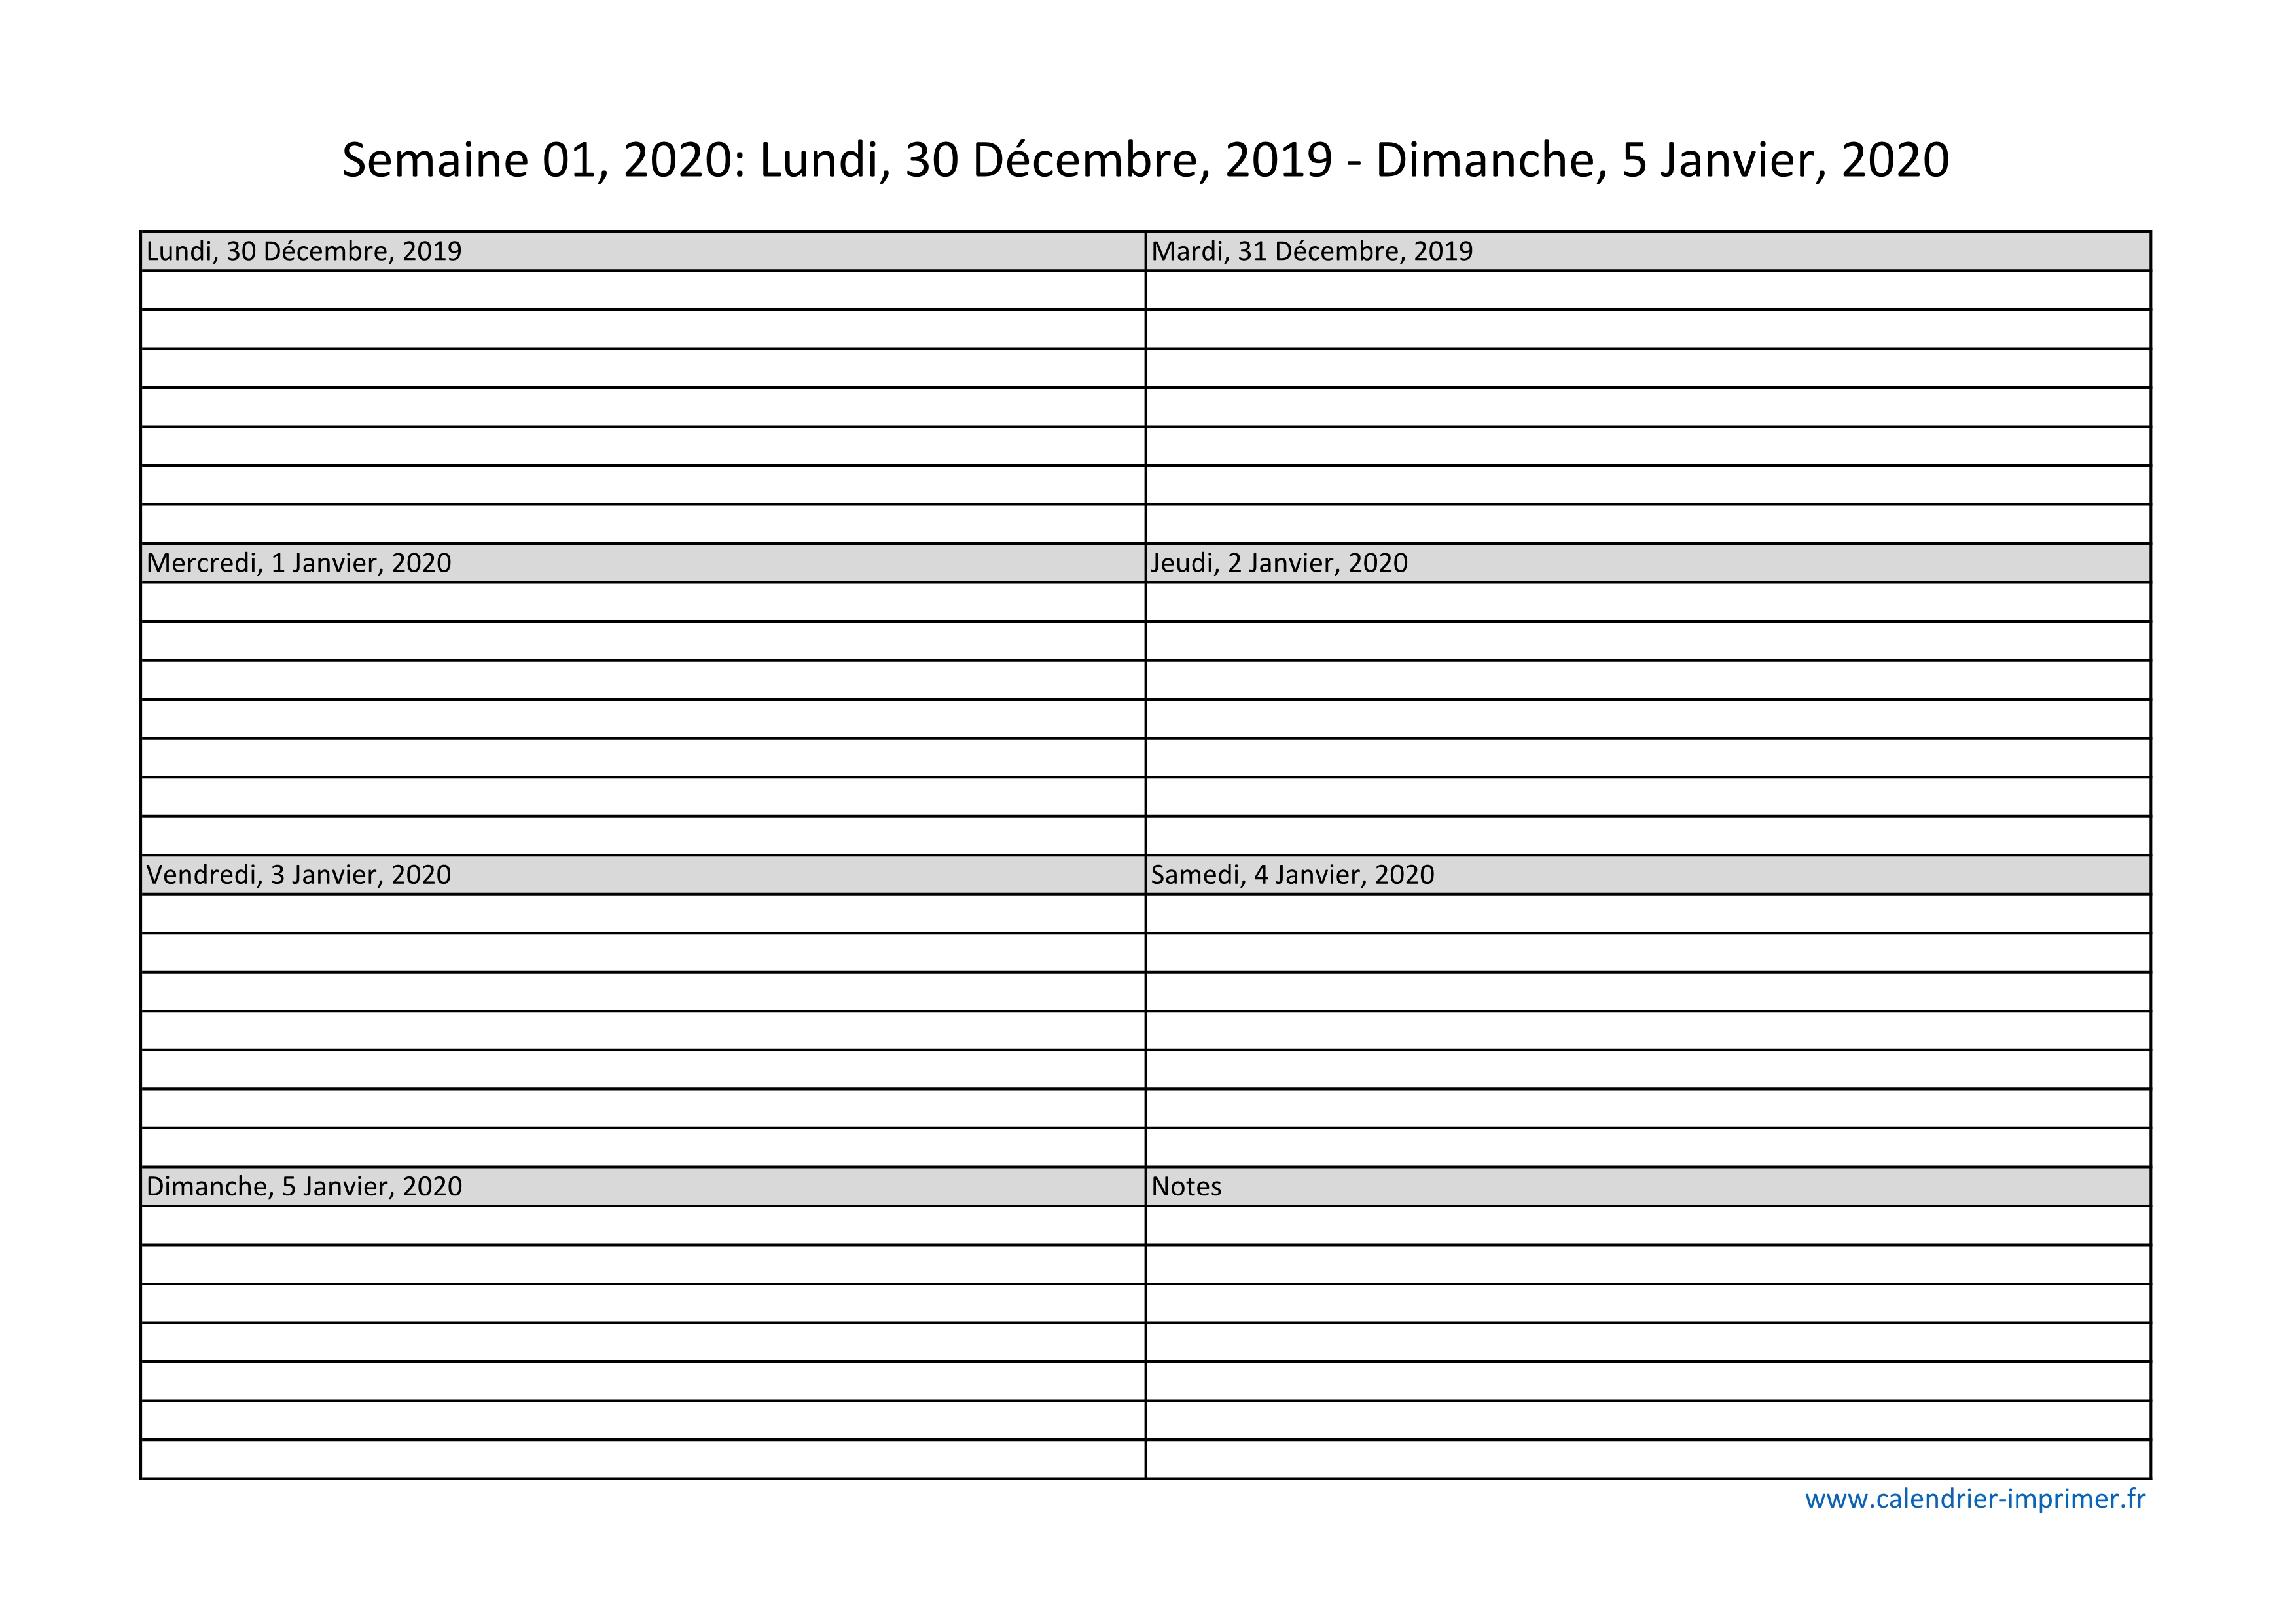 Semaines Calendrier 2020.Calendrier 2020 Semaine Planning Hebdomadaire Semainier